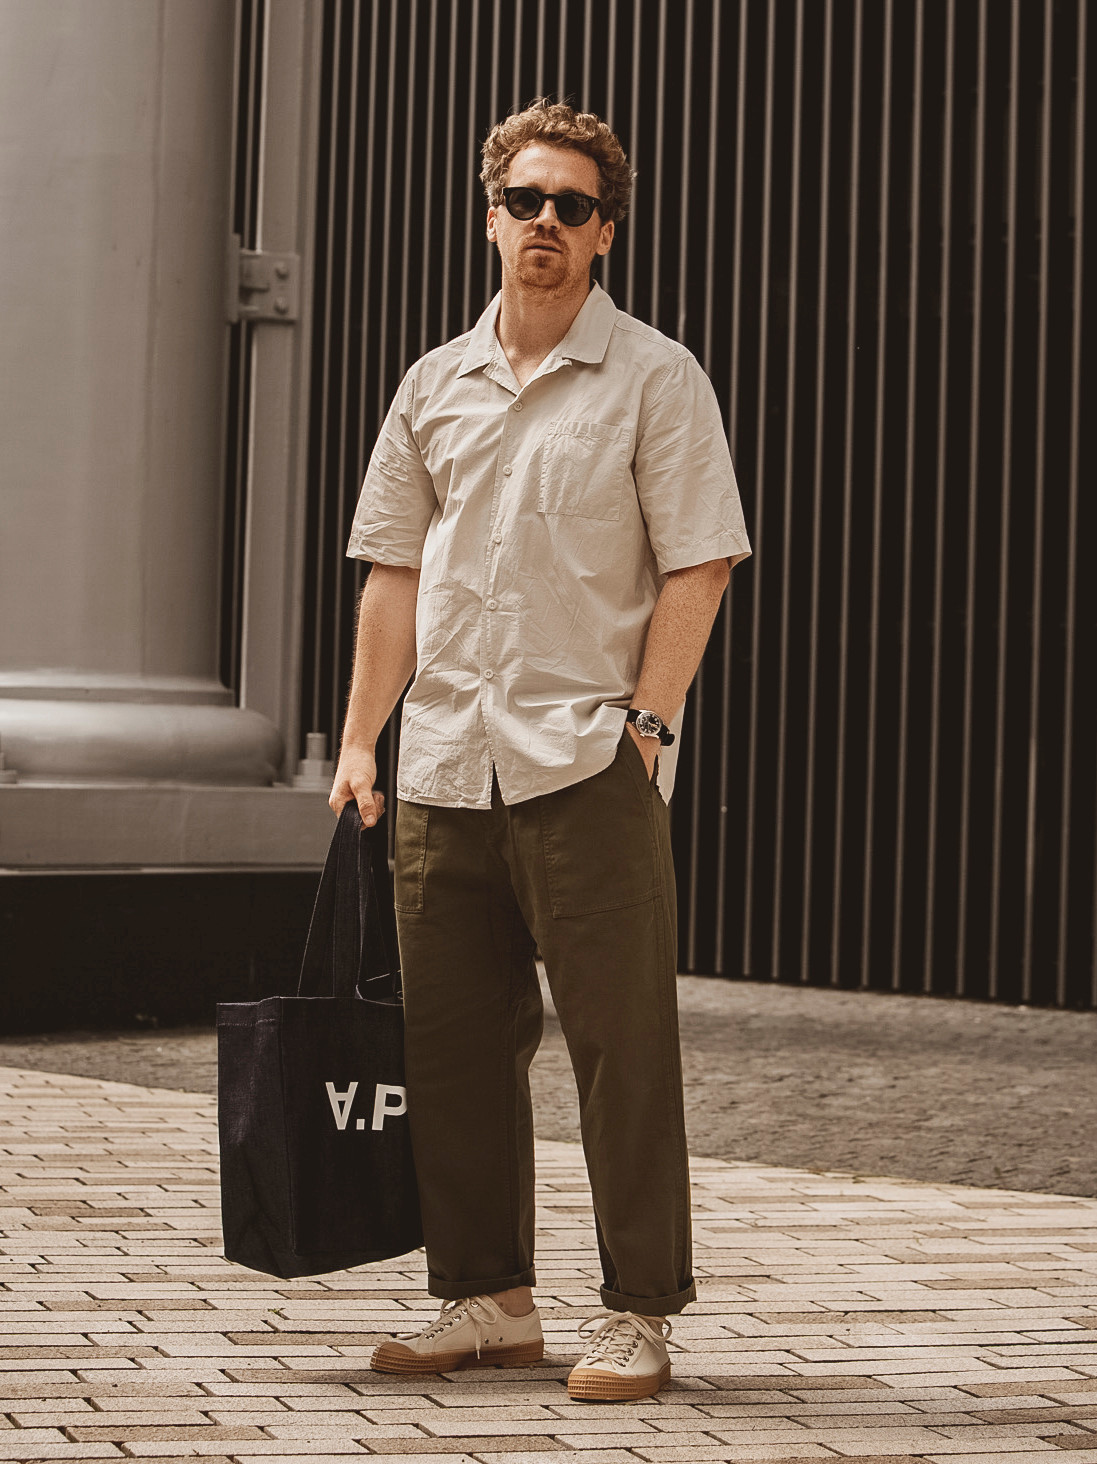 Men's outfit idea for 2021 with neutral short-sleeved plain shirt, green chinos, neutral sneakers. Suitable for spring and summer.